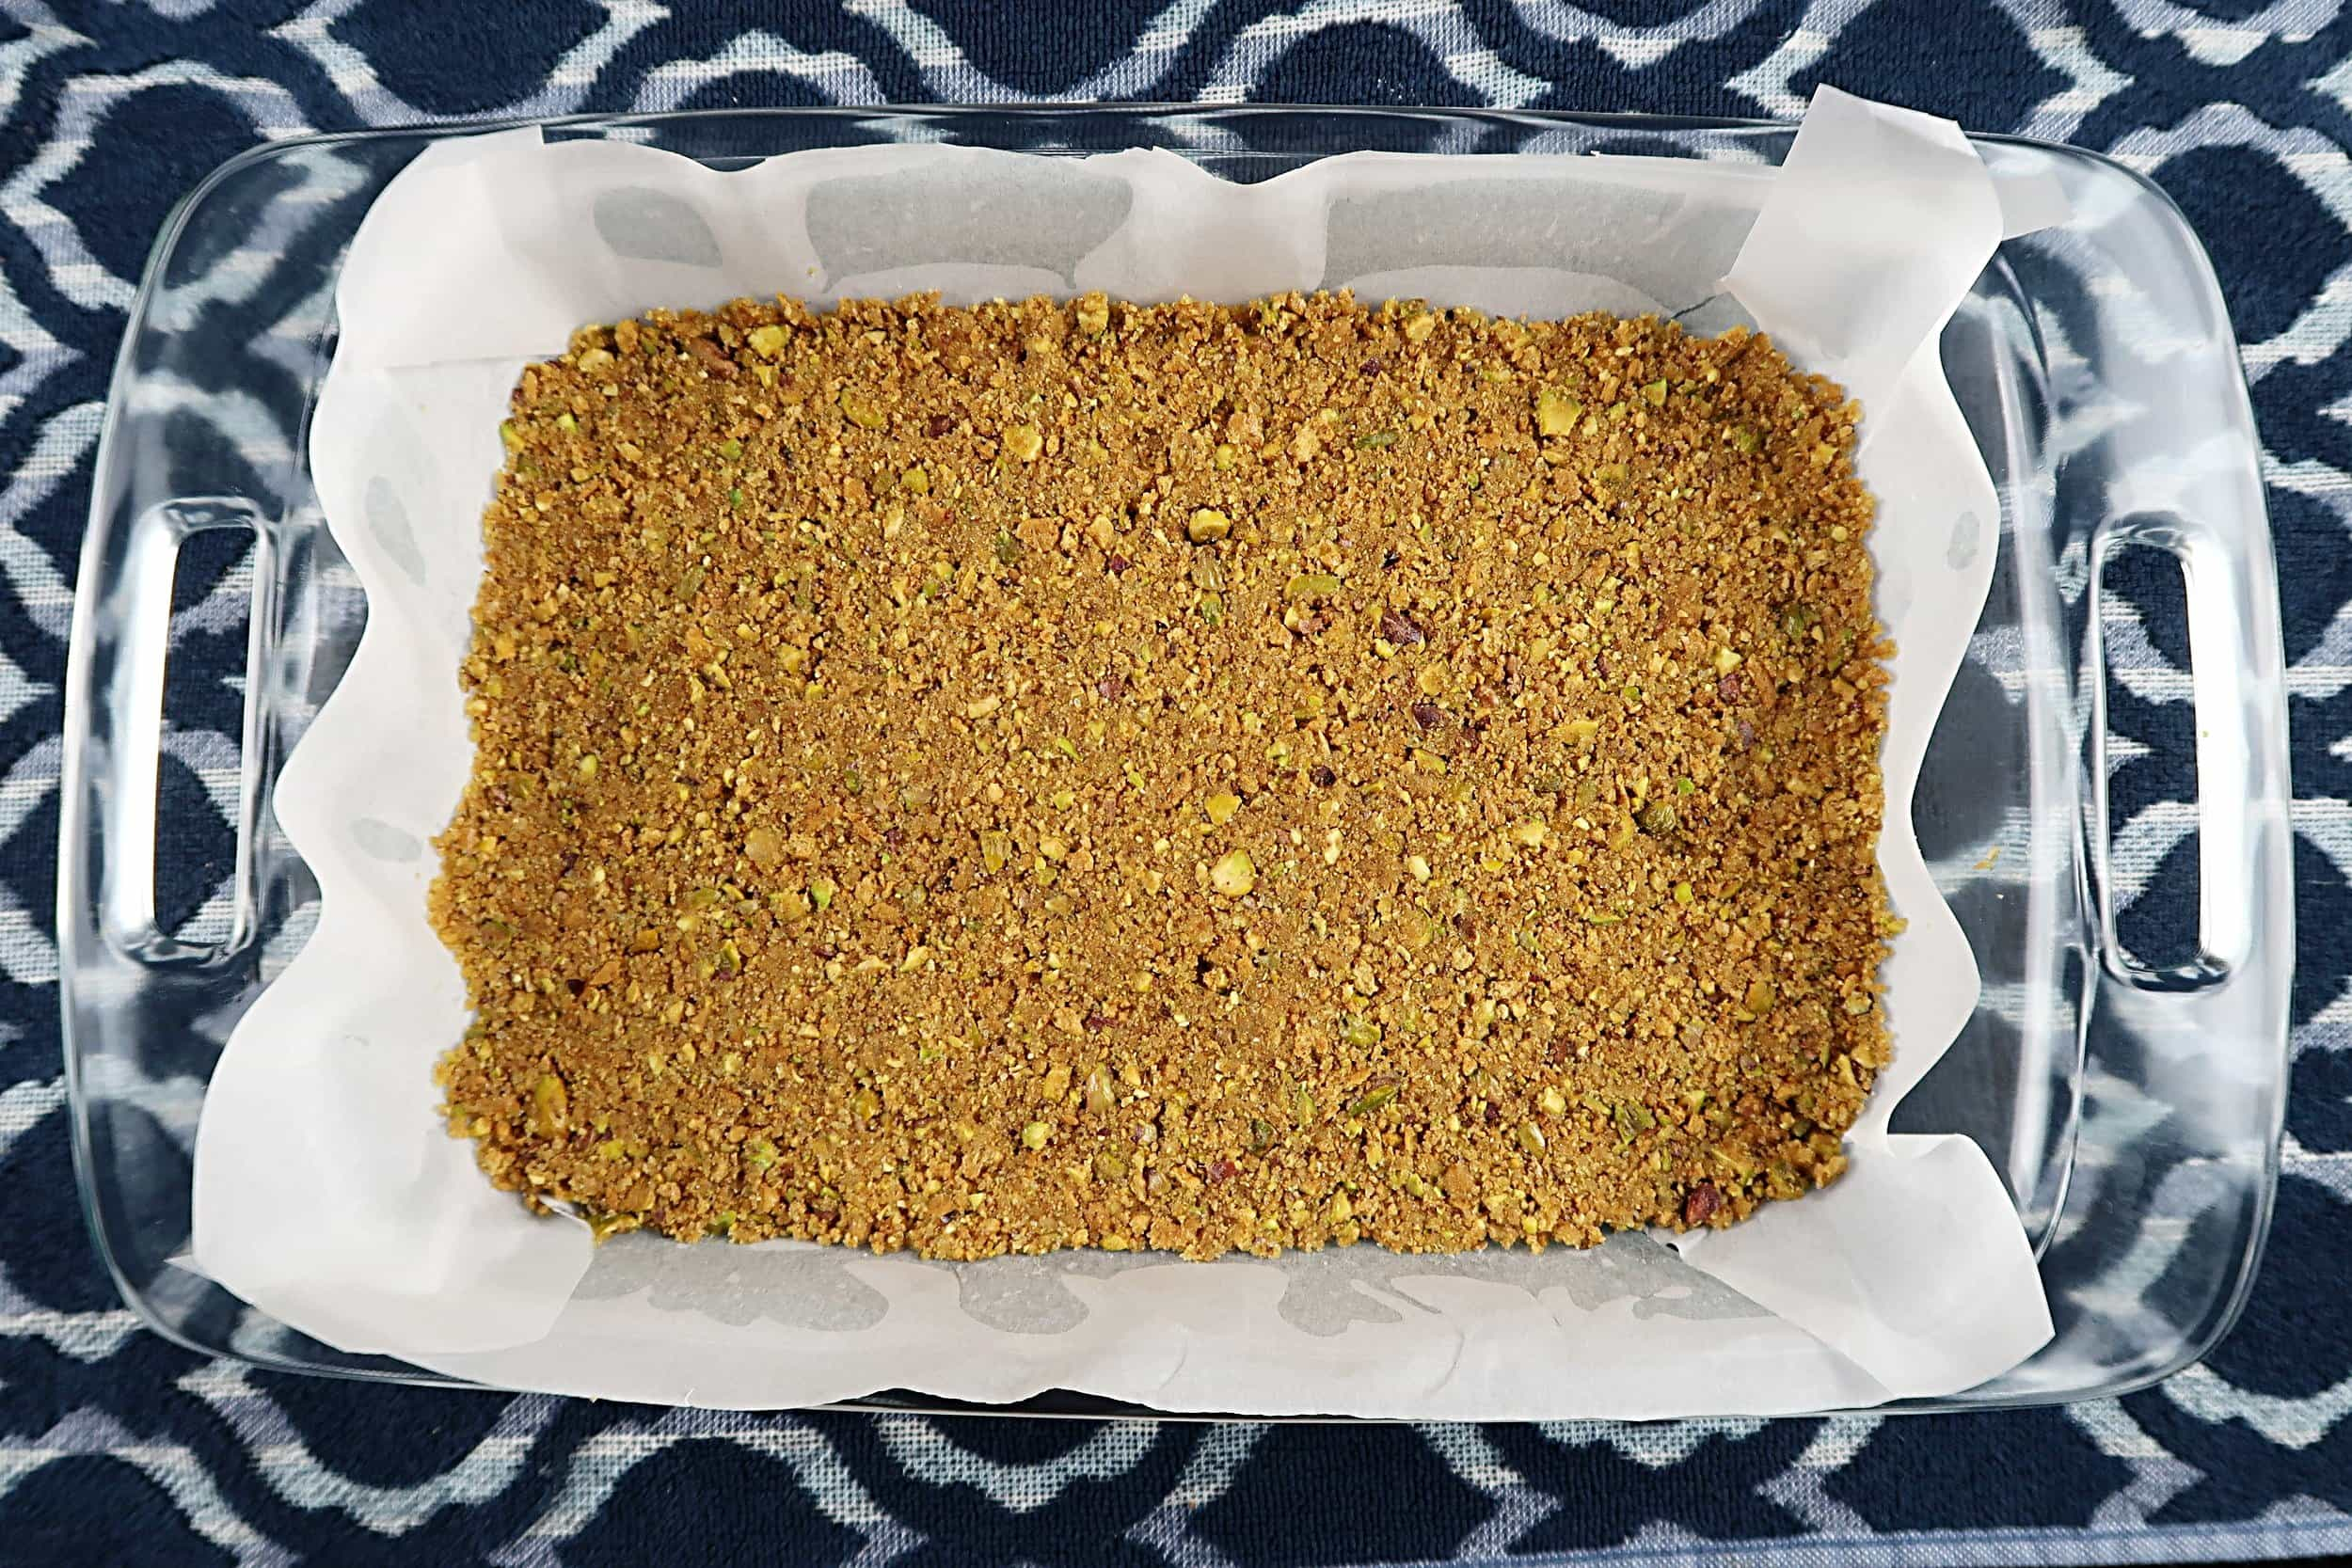 Pistachio and graham cracker crust pressed into a baking dish.